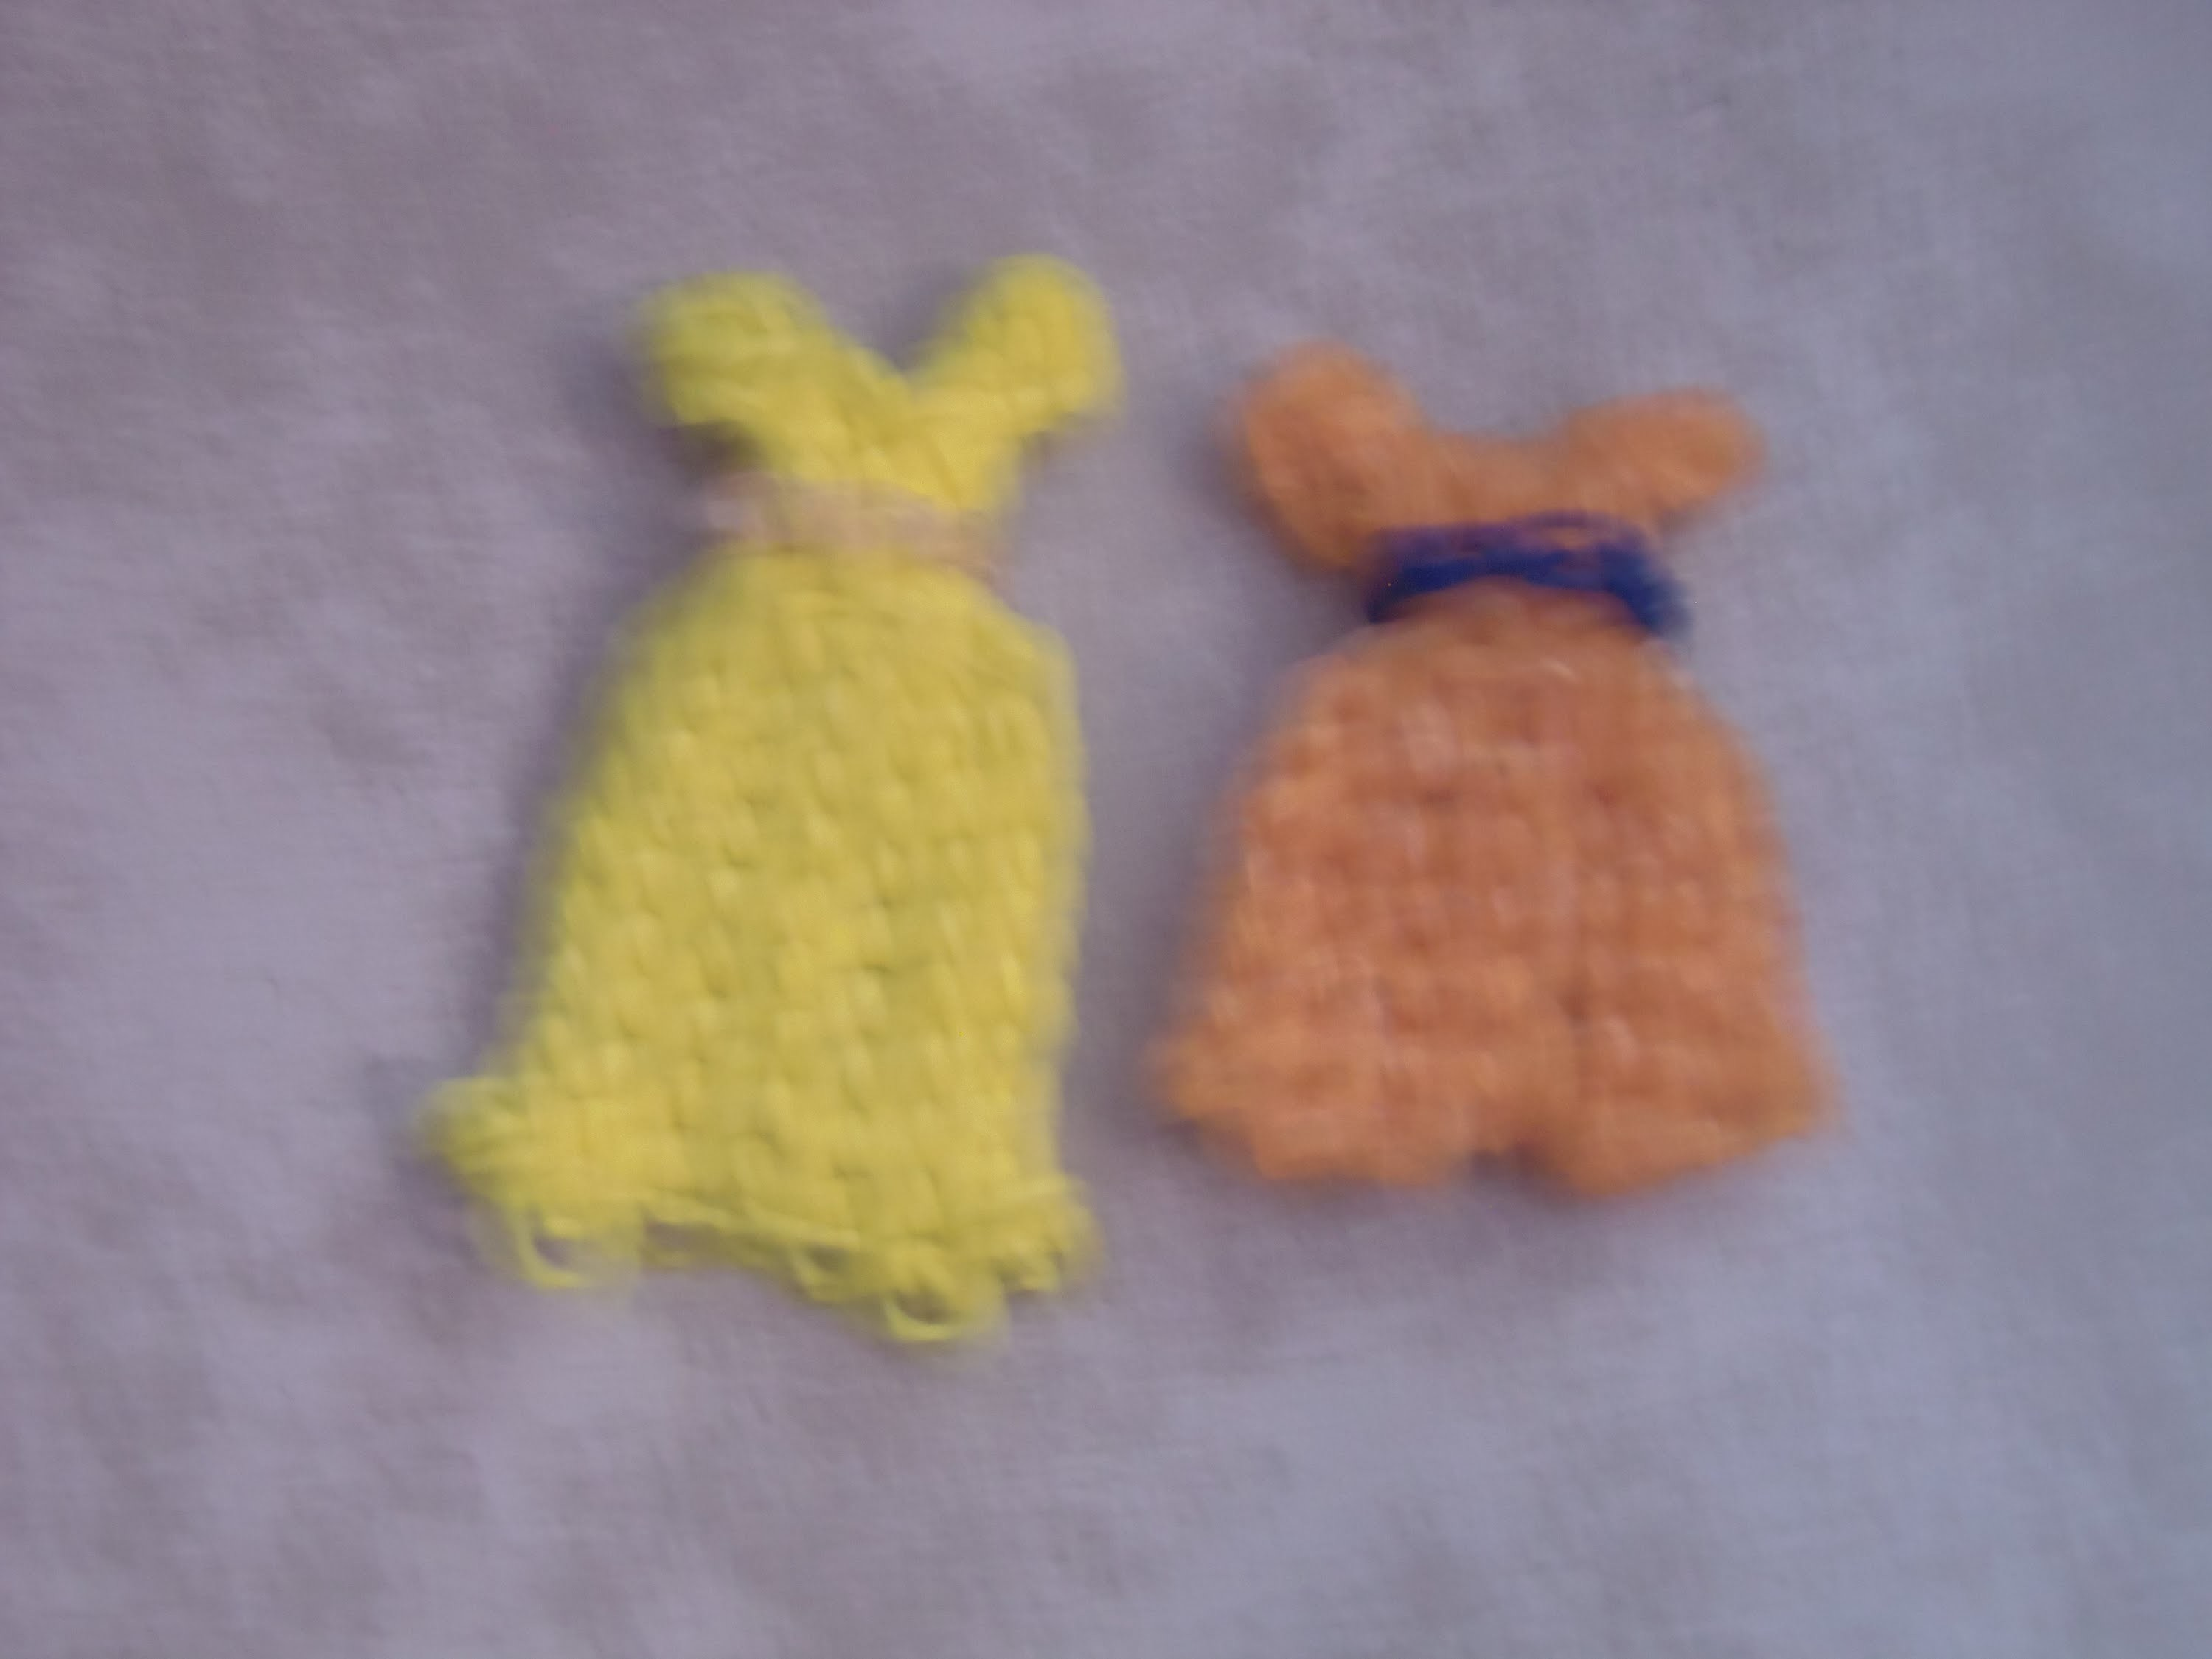 Ball Gown: On Rainbow Loom